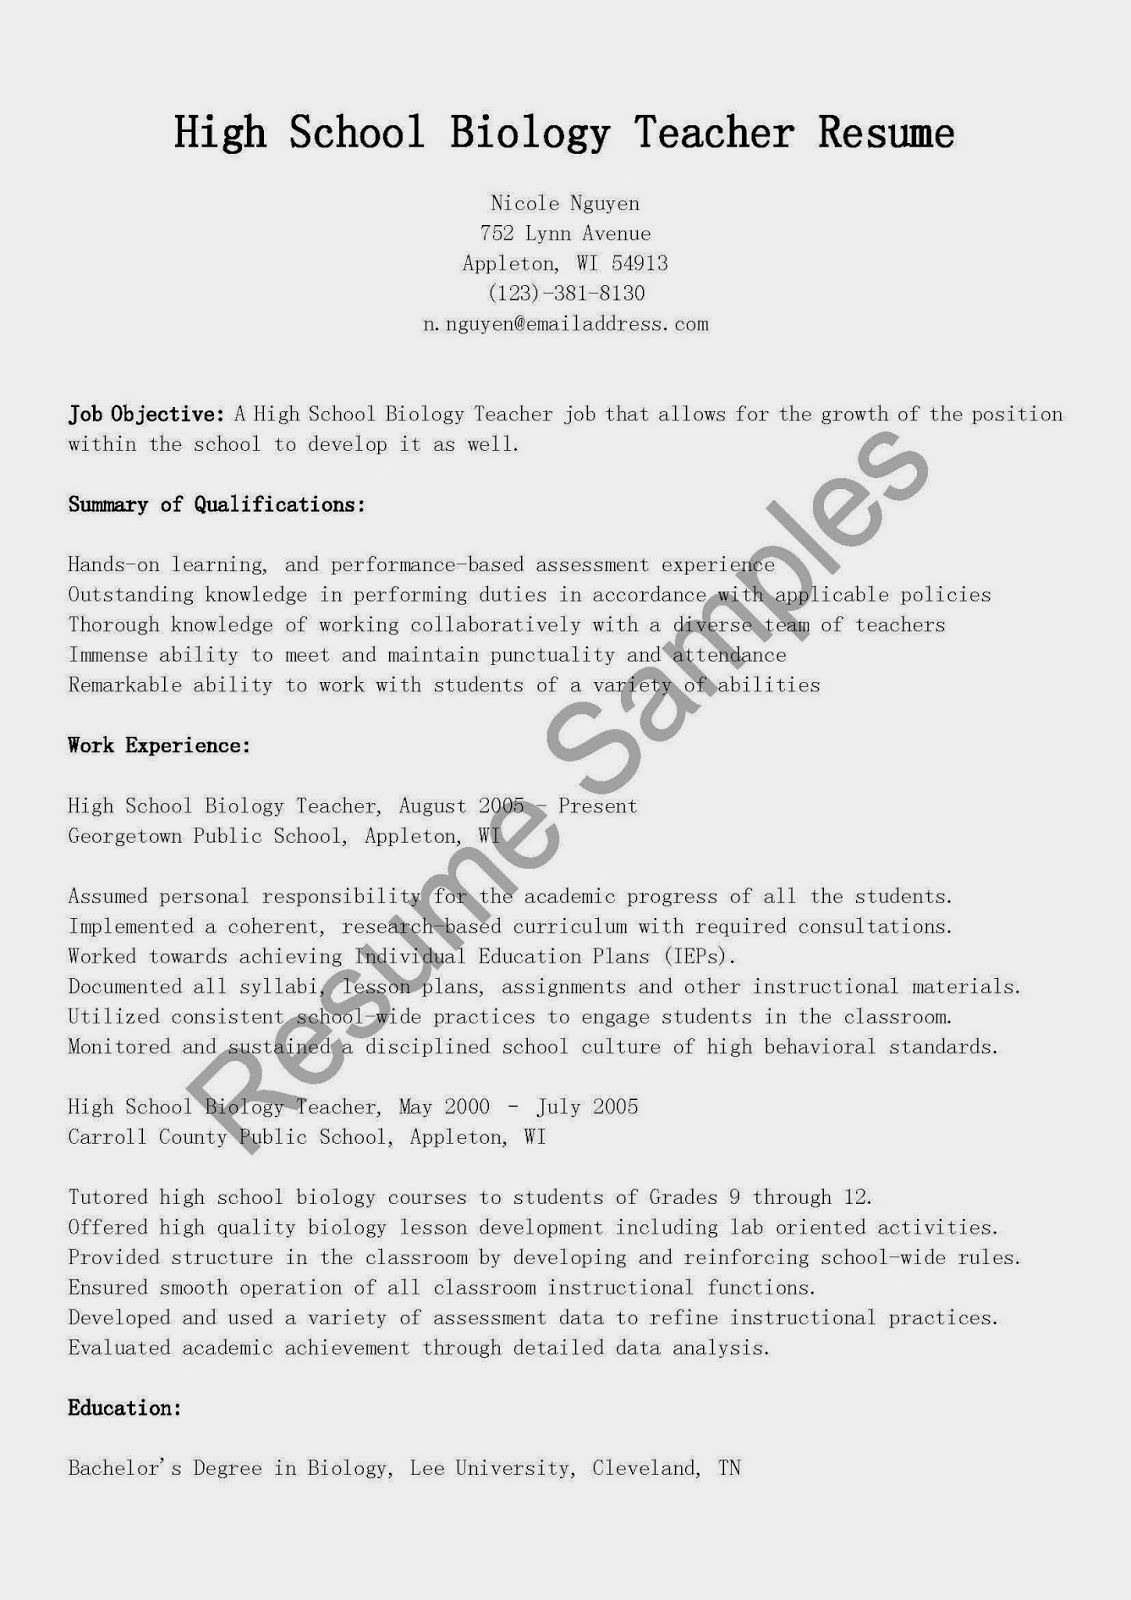 resume samples high school biology teacher sample for accountant pdf format financial analyst positive objective